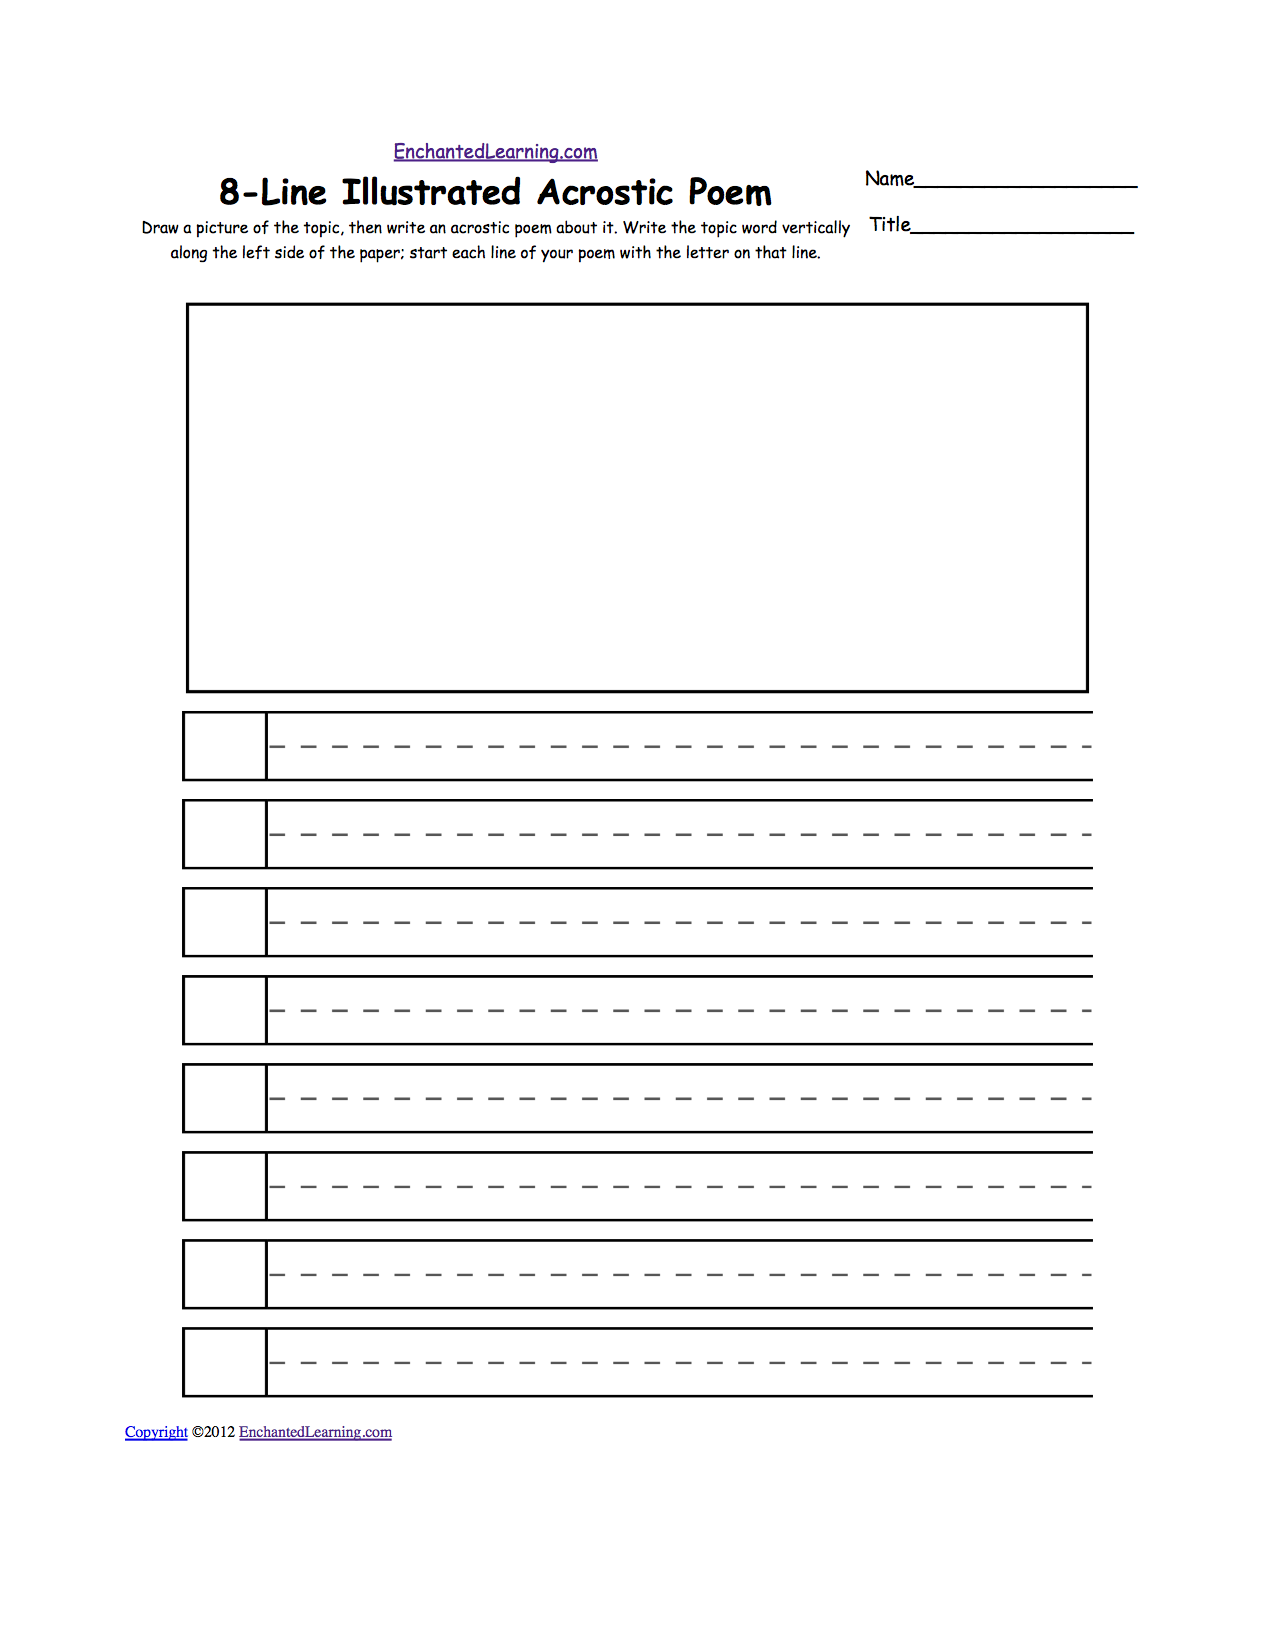 Worksheet Poetry Worksheets blank illustrated acrostic poem worksheets handwriting lines pick a topic draw picture of it then write an about on dotted the word vertically along left s